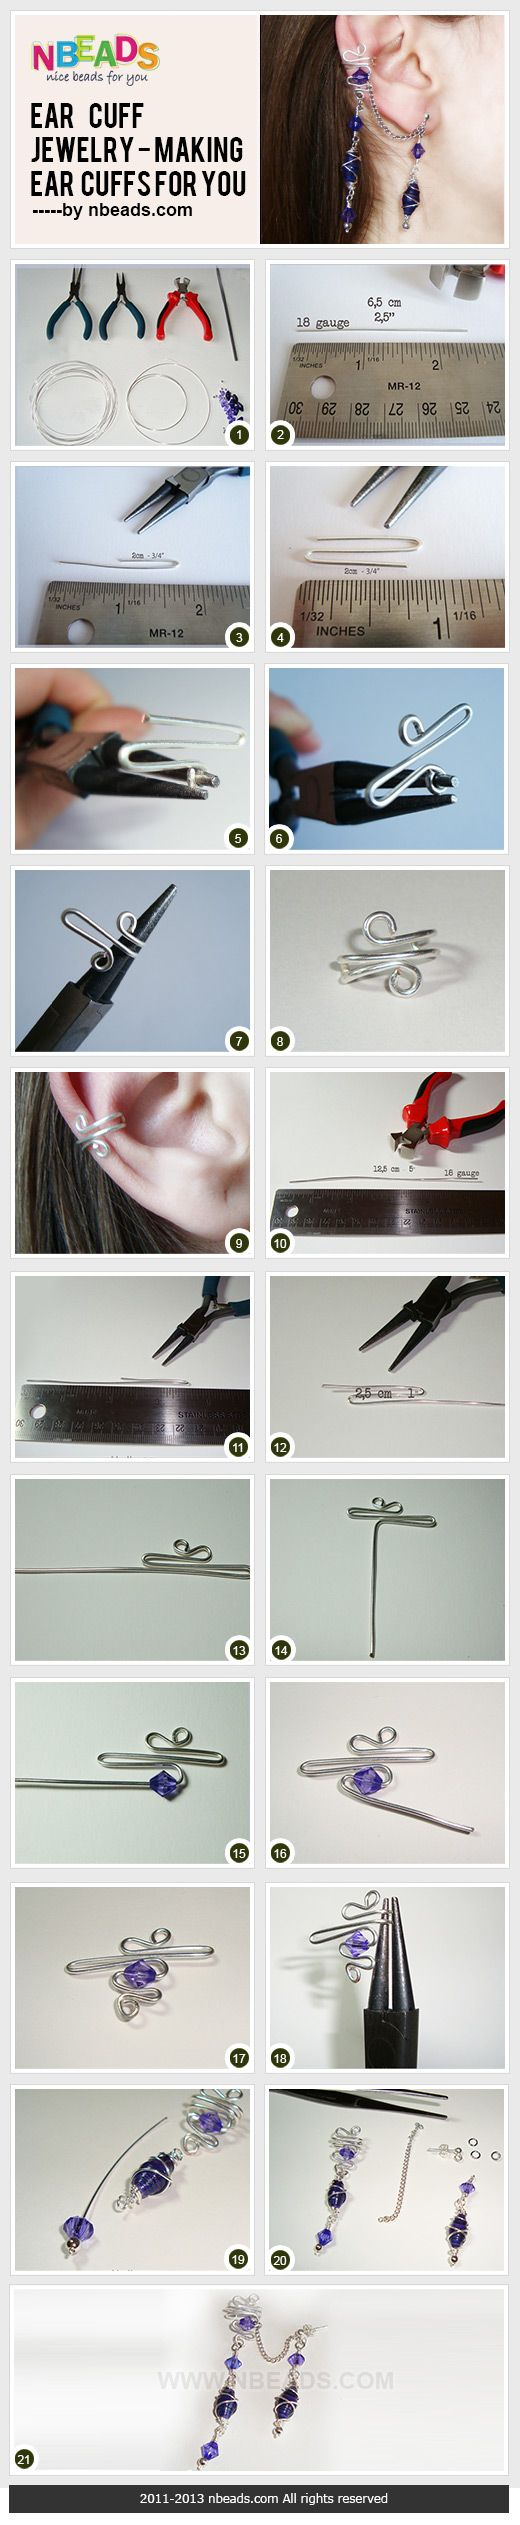 ear cuffs you for making hat cuff jewelry cap ear